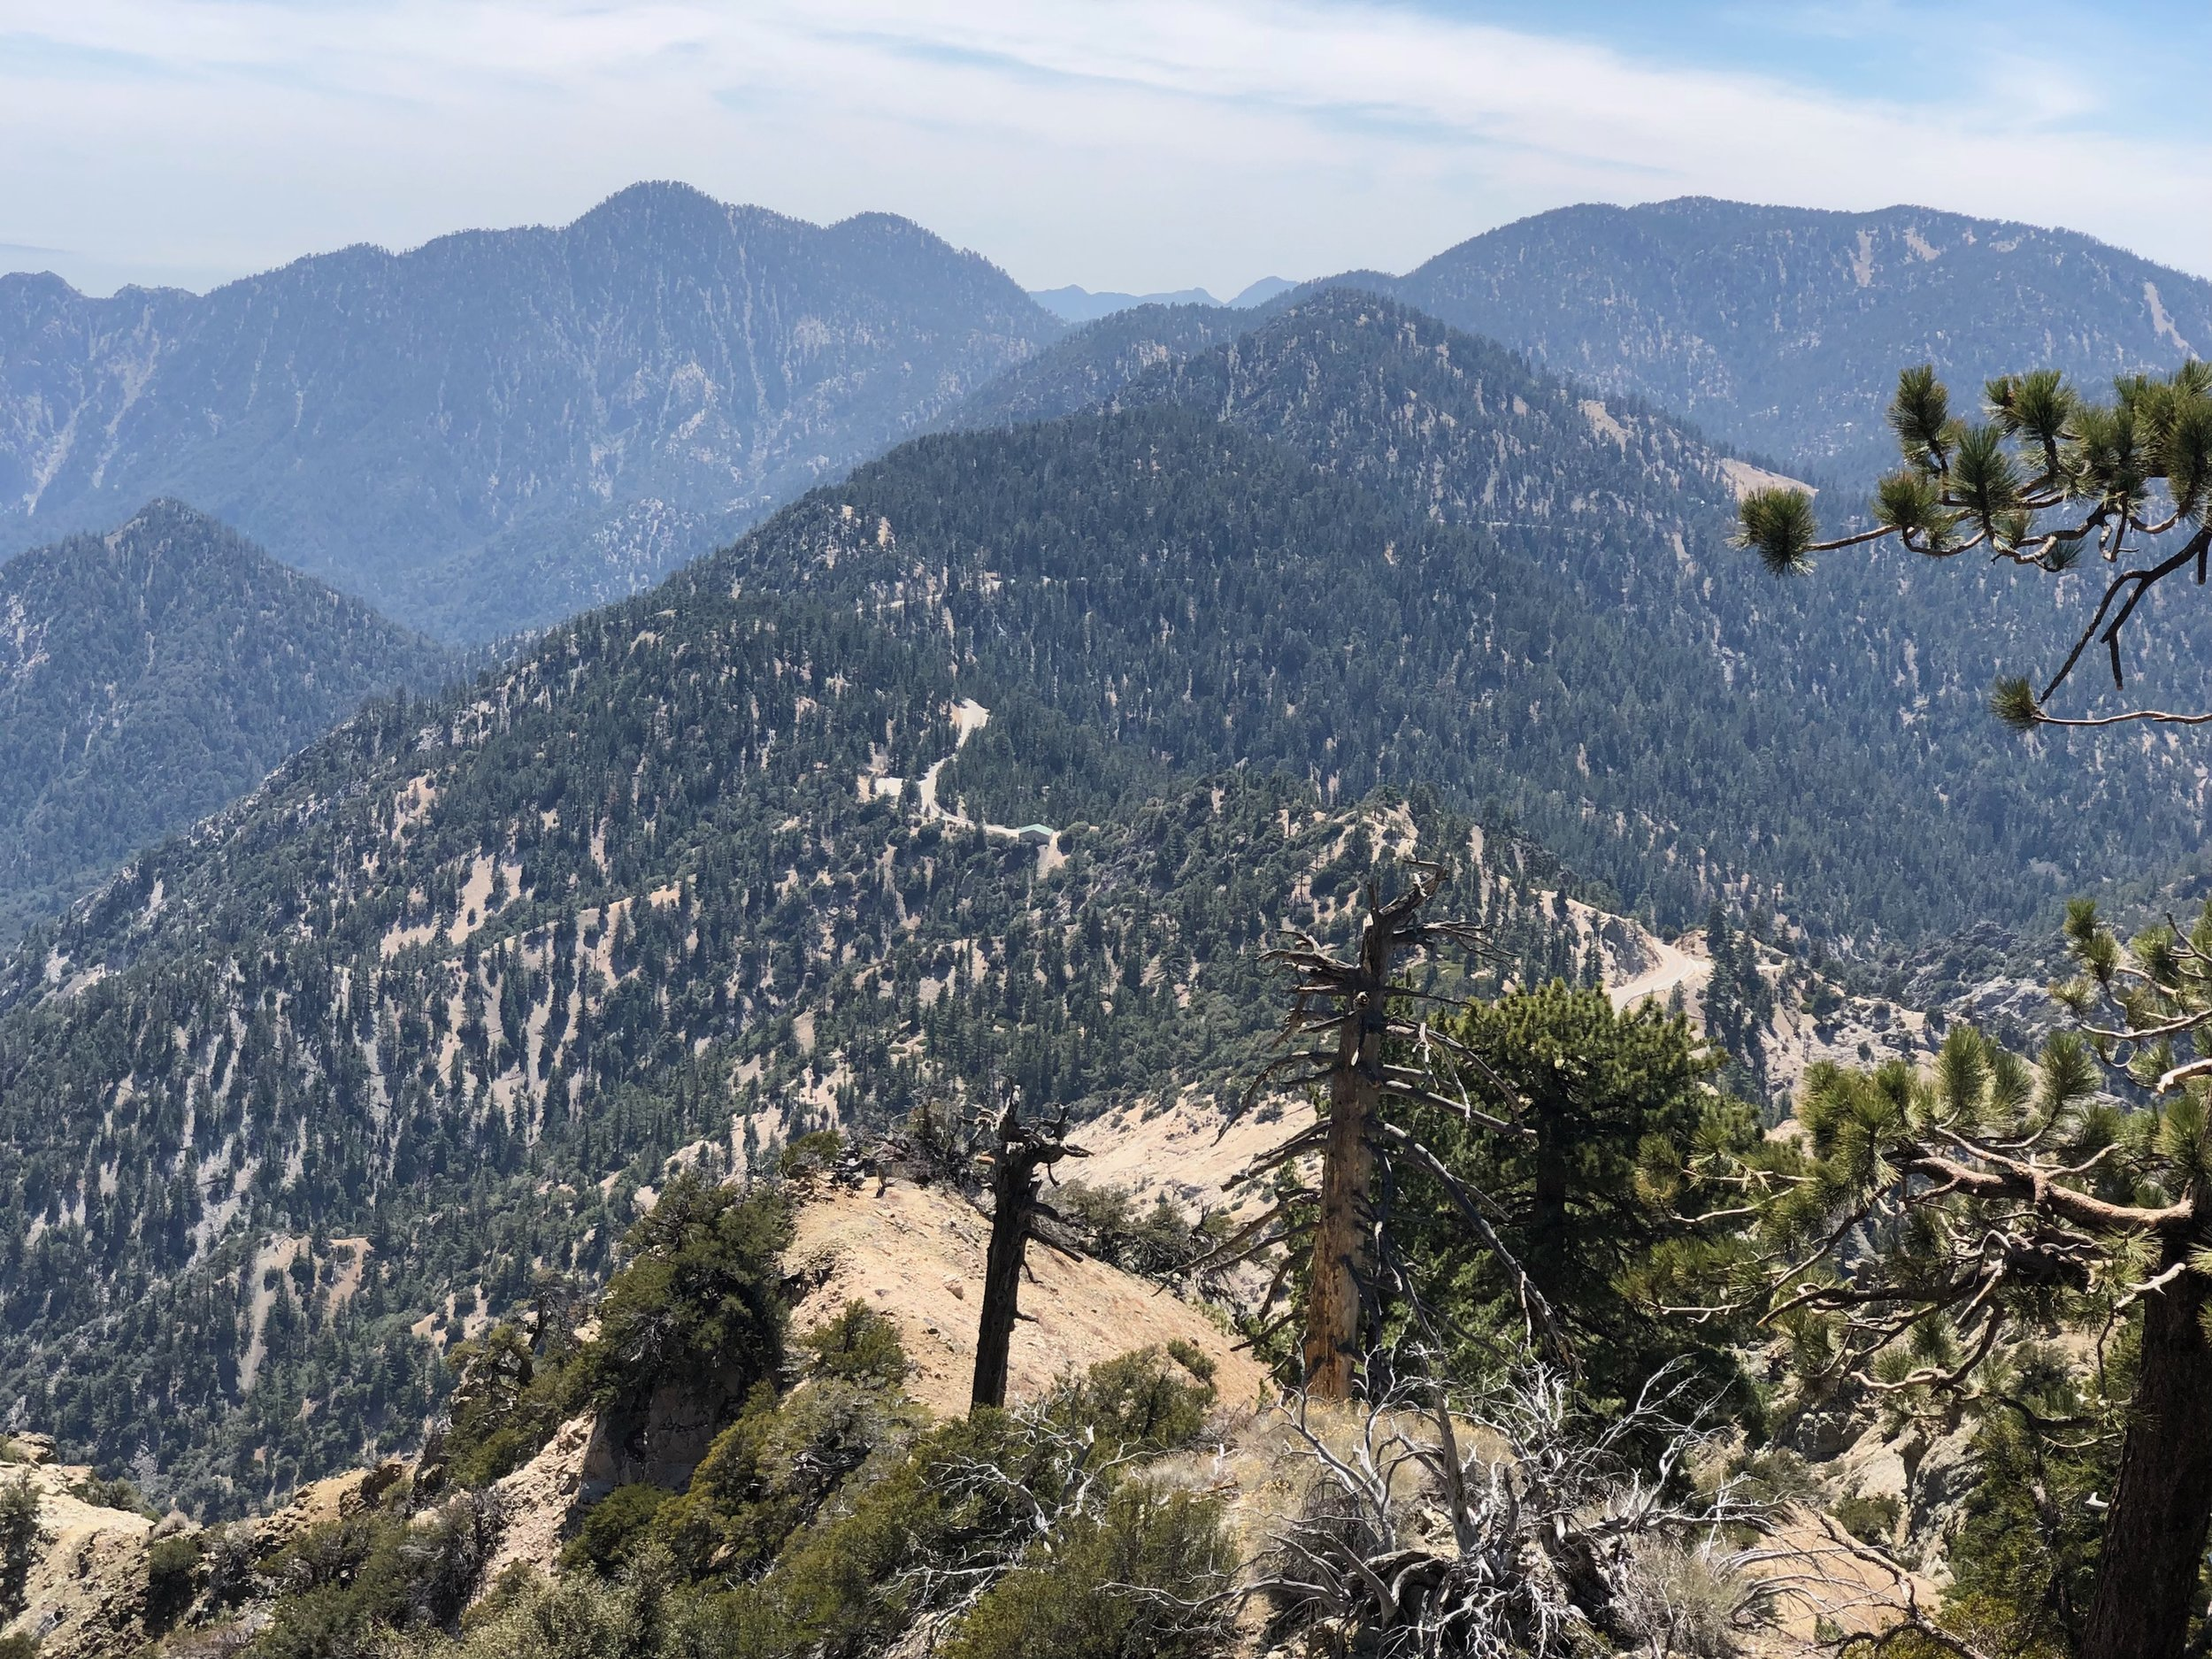 The highway you can barely see in the forest is CA 2, or more commonly called Angels Crest Highway.  It would be a fun ride on a motorcycle.  In fact, I think I'll do that after the PCT.